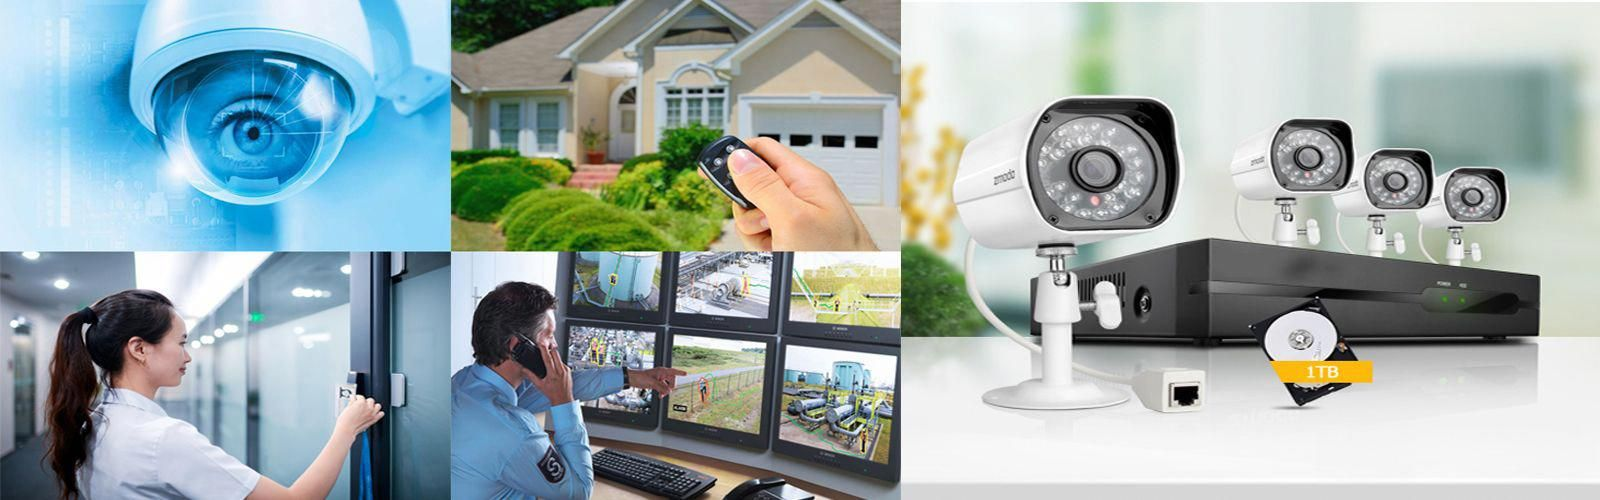 If You Are Looking For A Security Camera Cctv Camera System On A Digital Video Rec Wireless Home Security Systems Security Camera Installation Security Camera